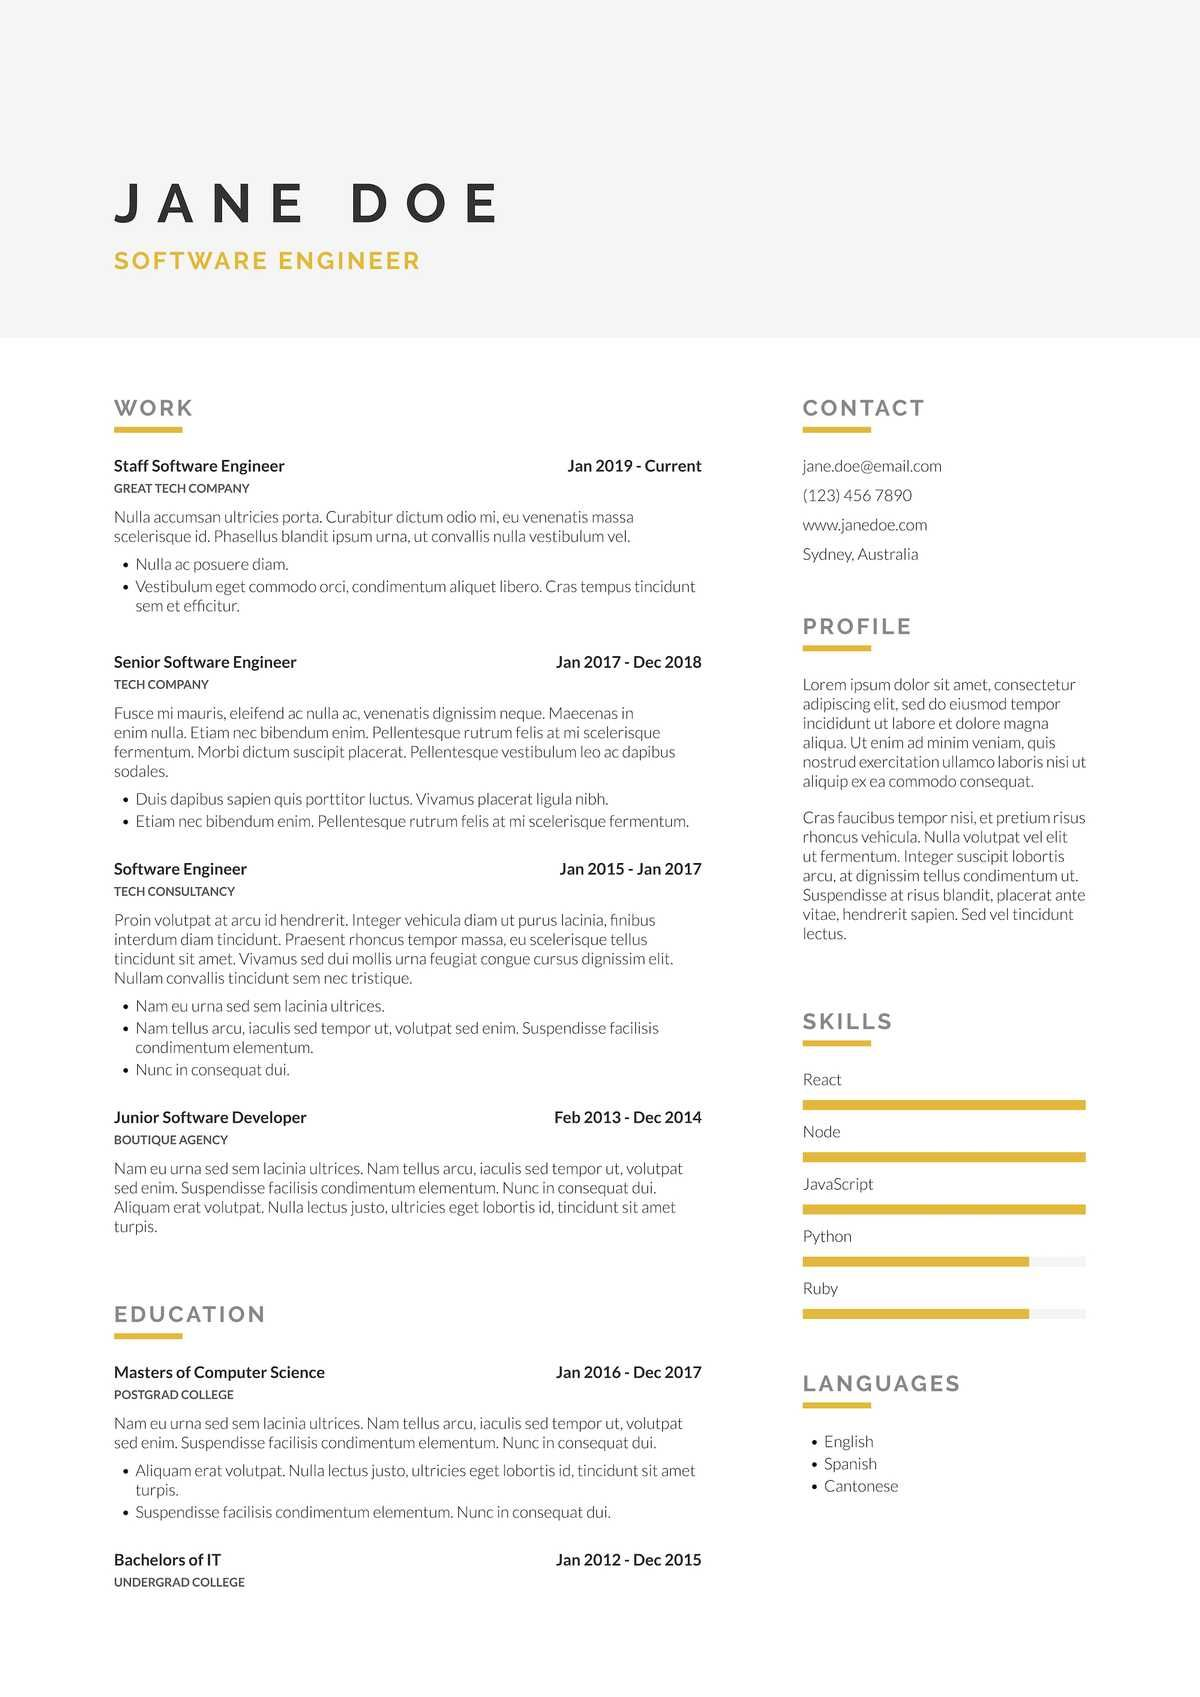 Build better resumes · ippy.io in 2020 Best resume